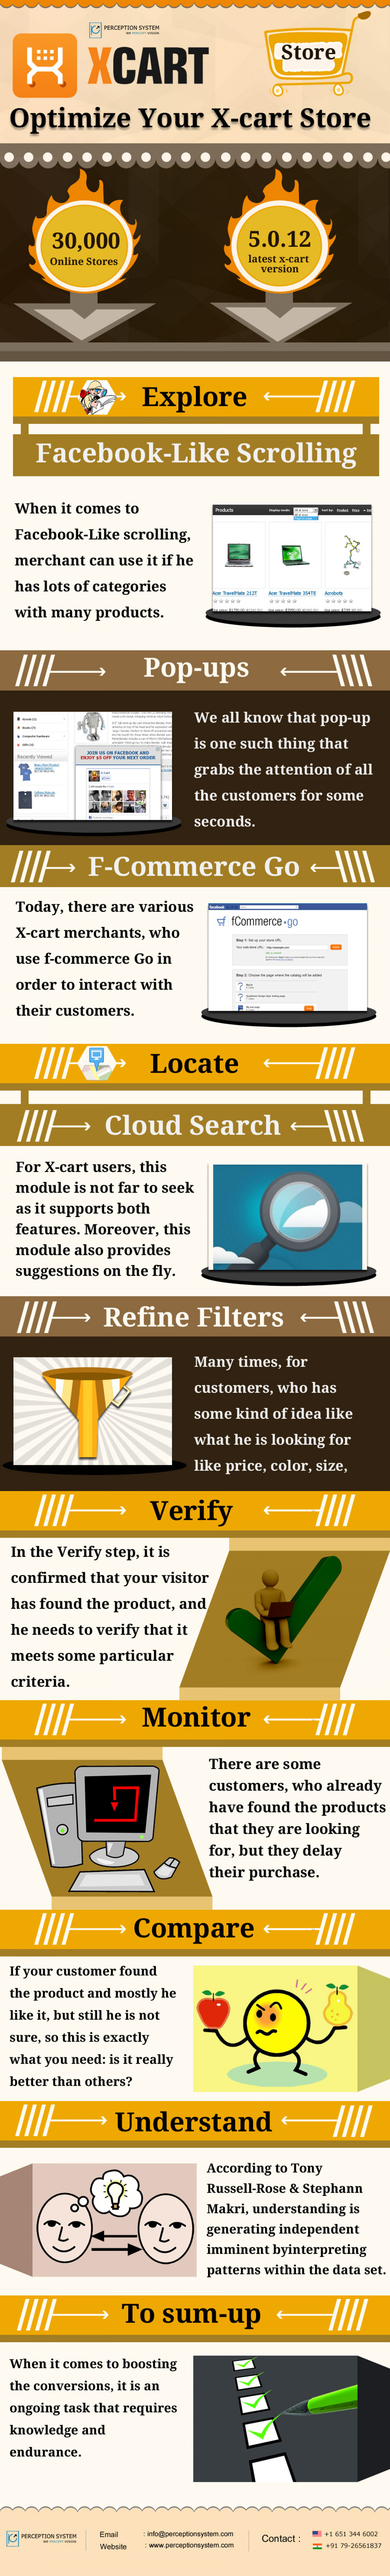 Optimize Your X-Cart Store Infographic